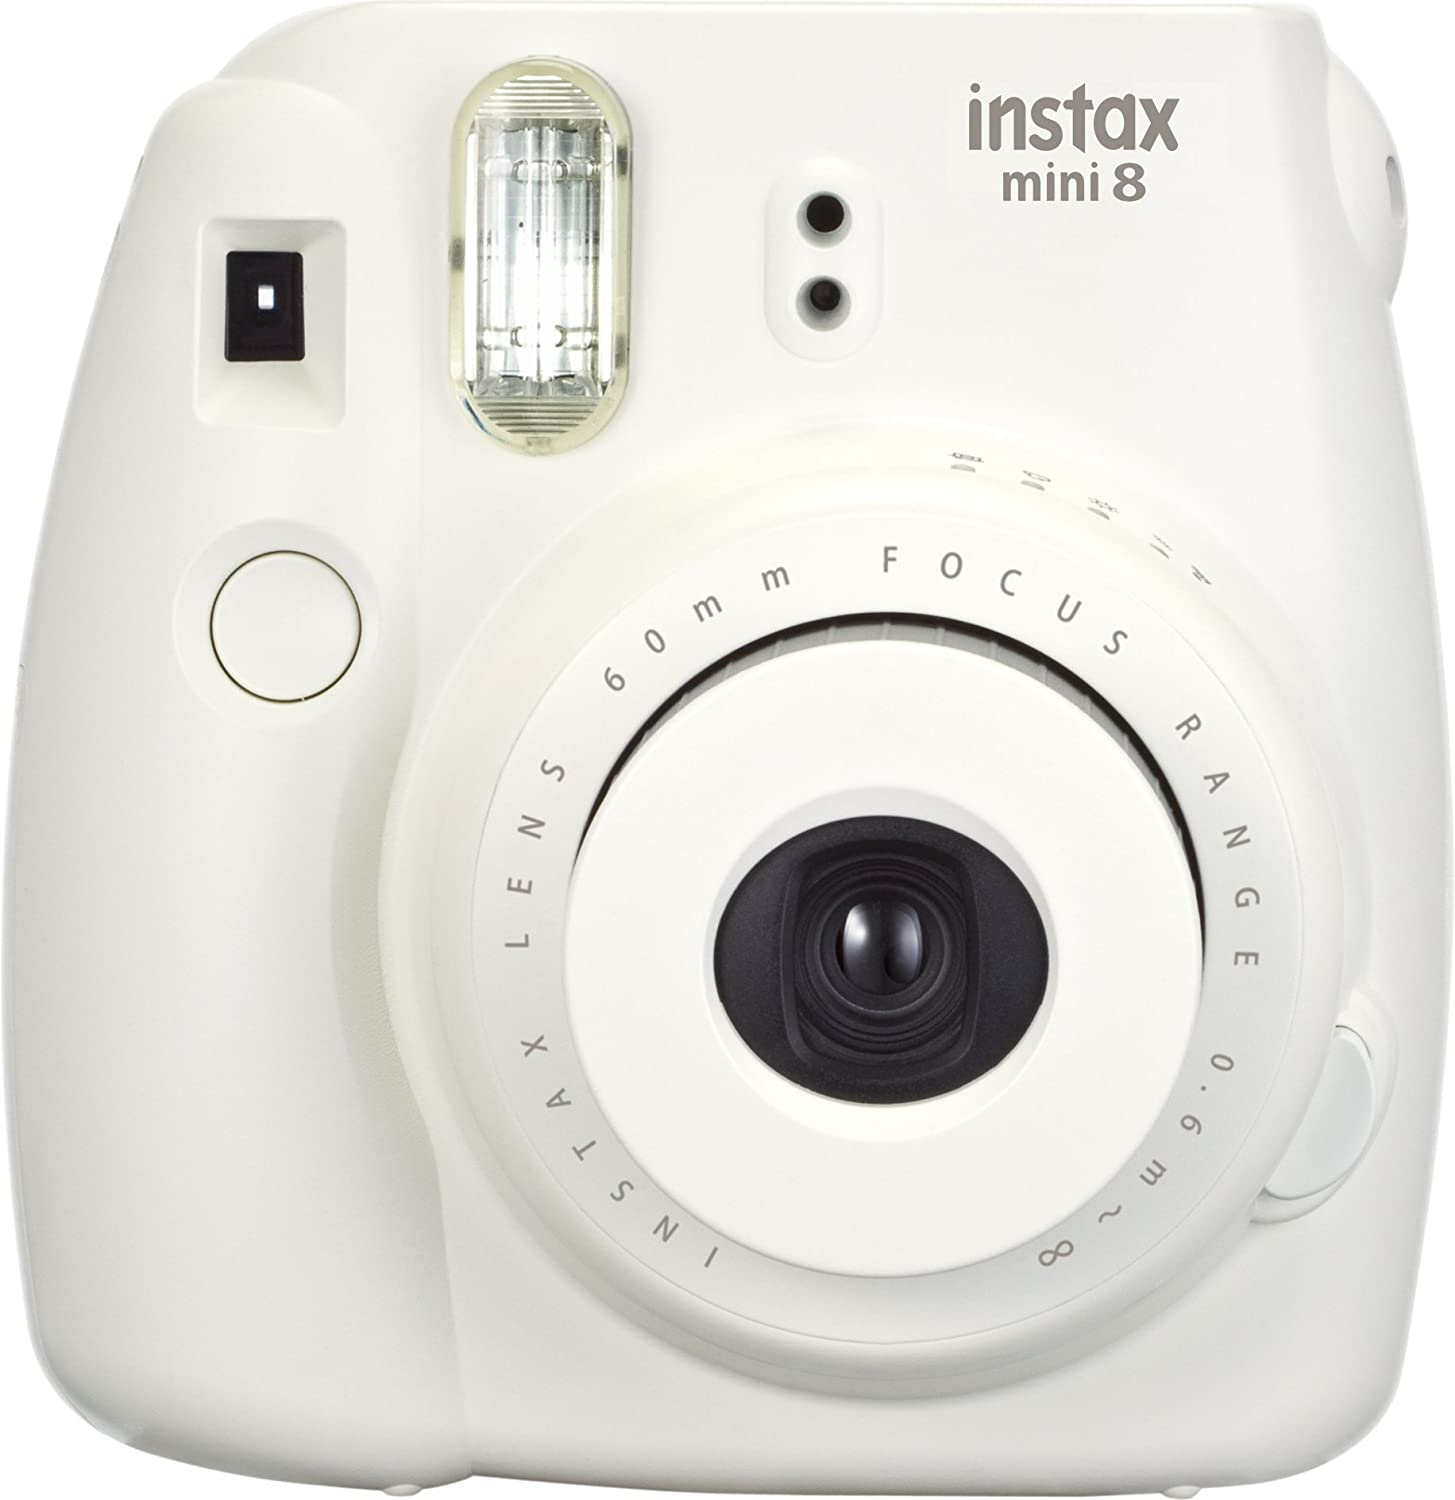 Amazon.com: Fujifilm Instax Mini 8 Instant Film Camera (White ...